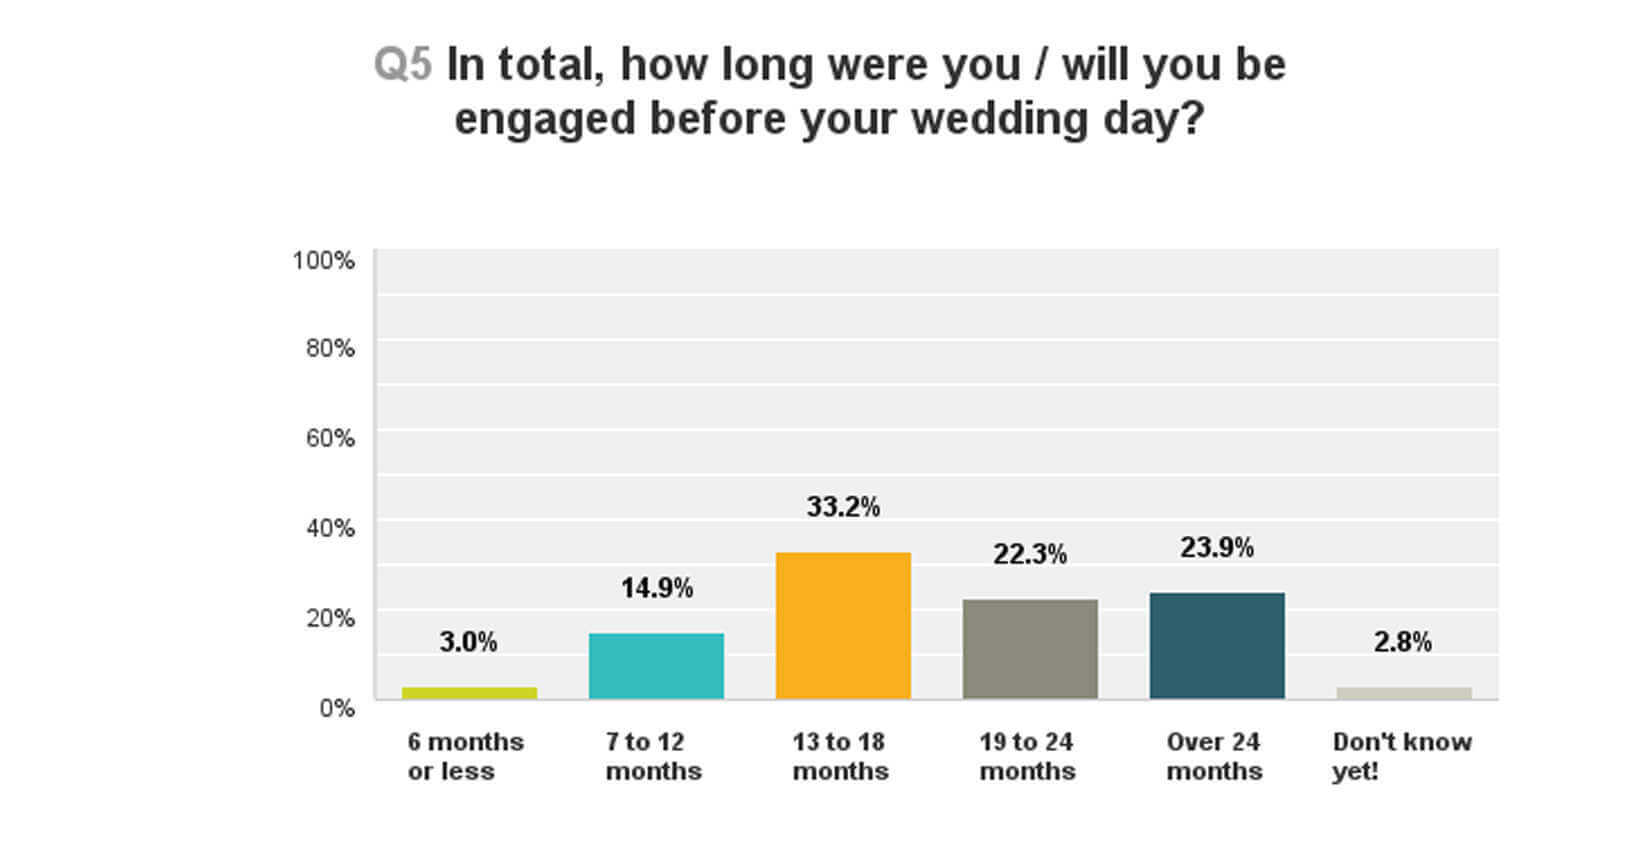 How long were you engaged